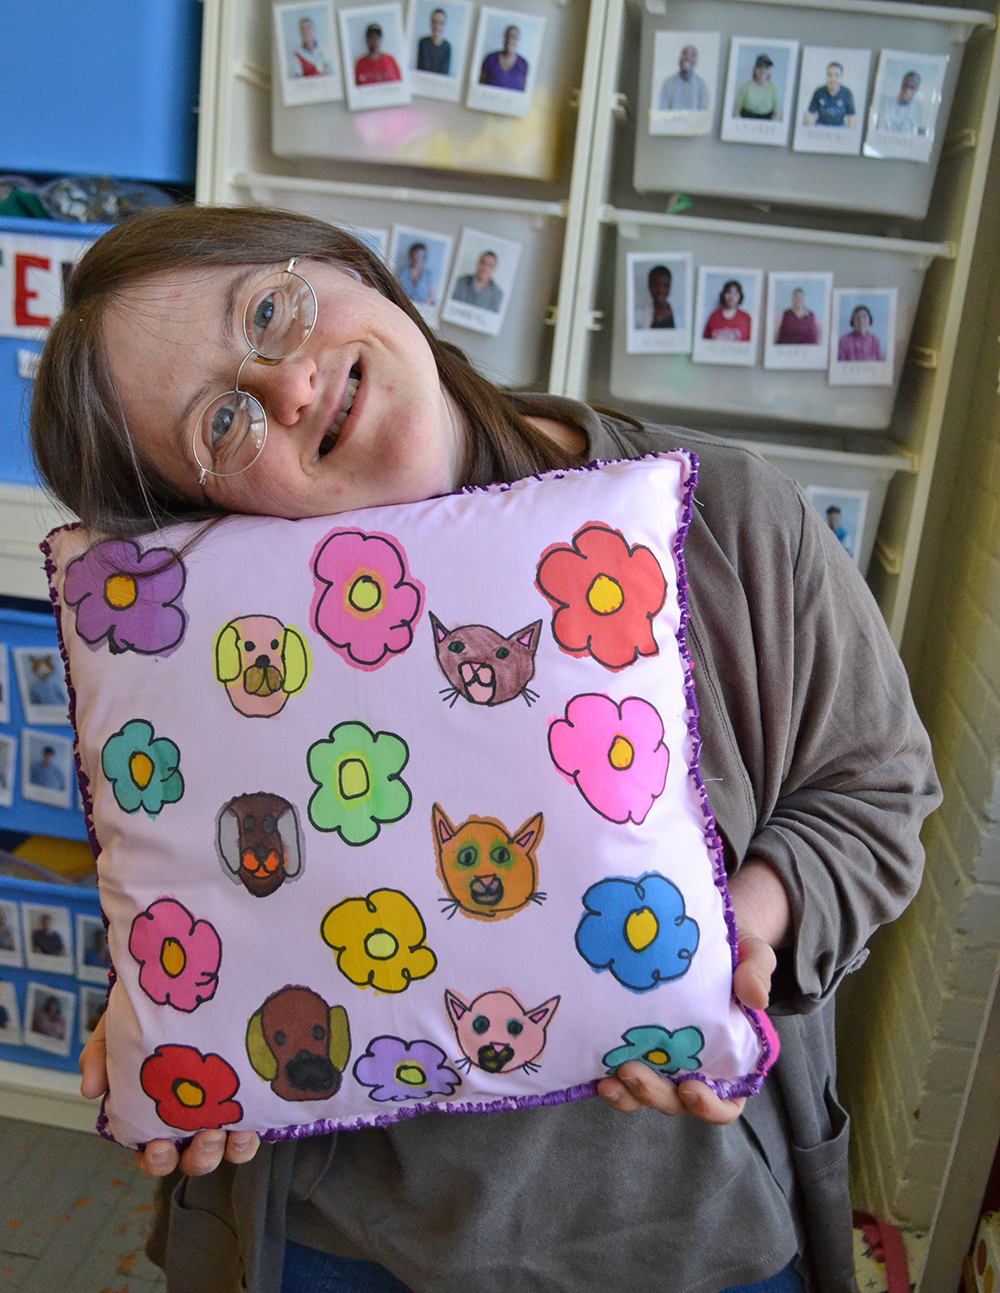 Beth Knipstein with her pillow